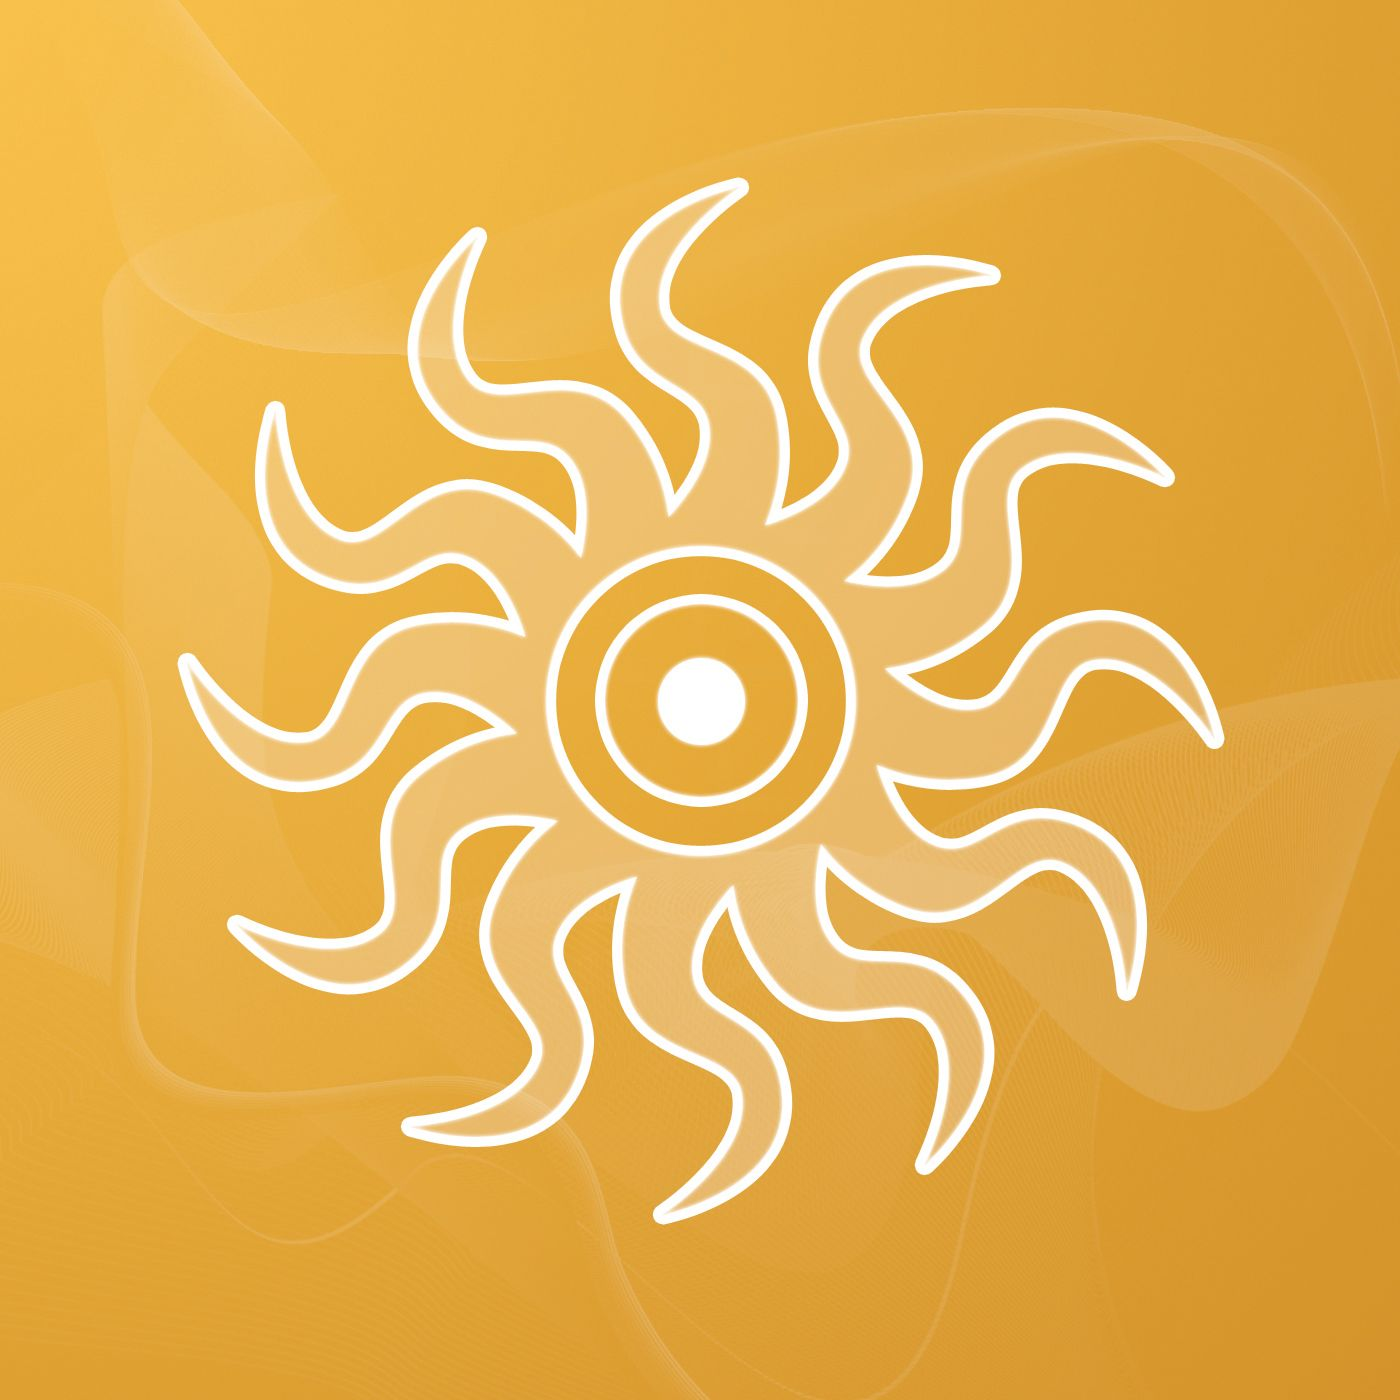 Sigils symbols sun salutation by sallie m keys this image in the center of the sun is the alchemical symbol for gold which represents spiritual insight buycottarizona